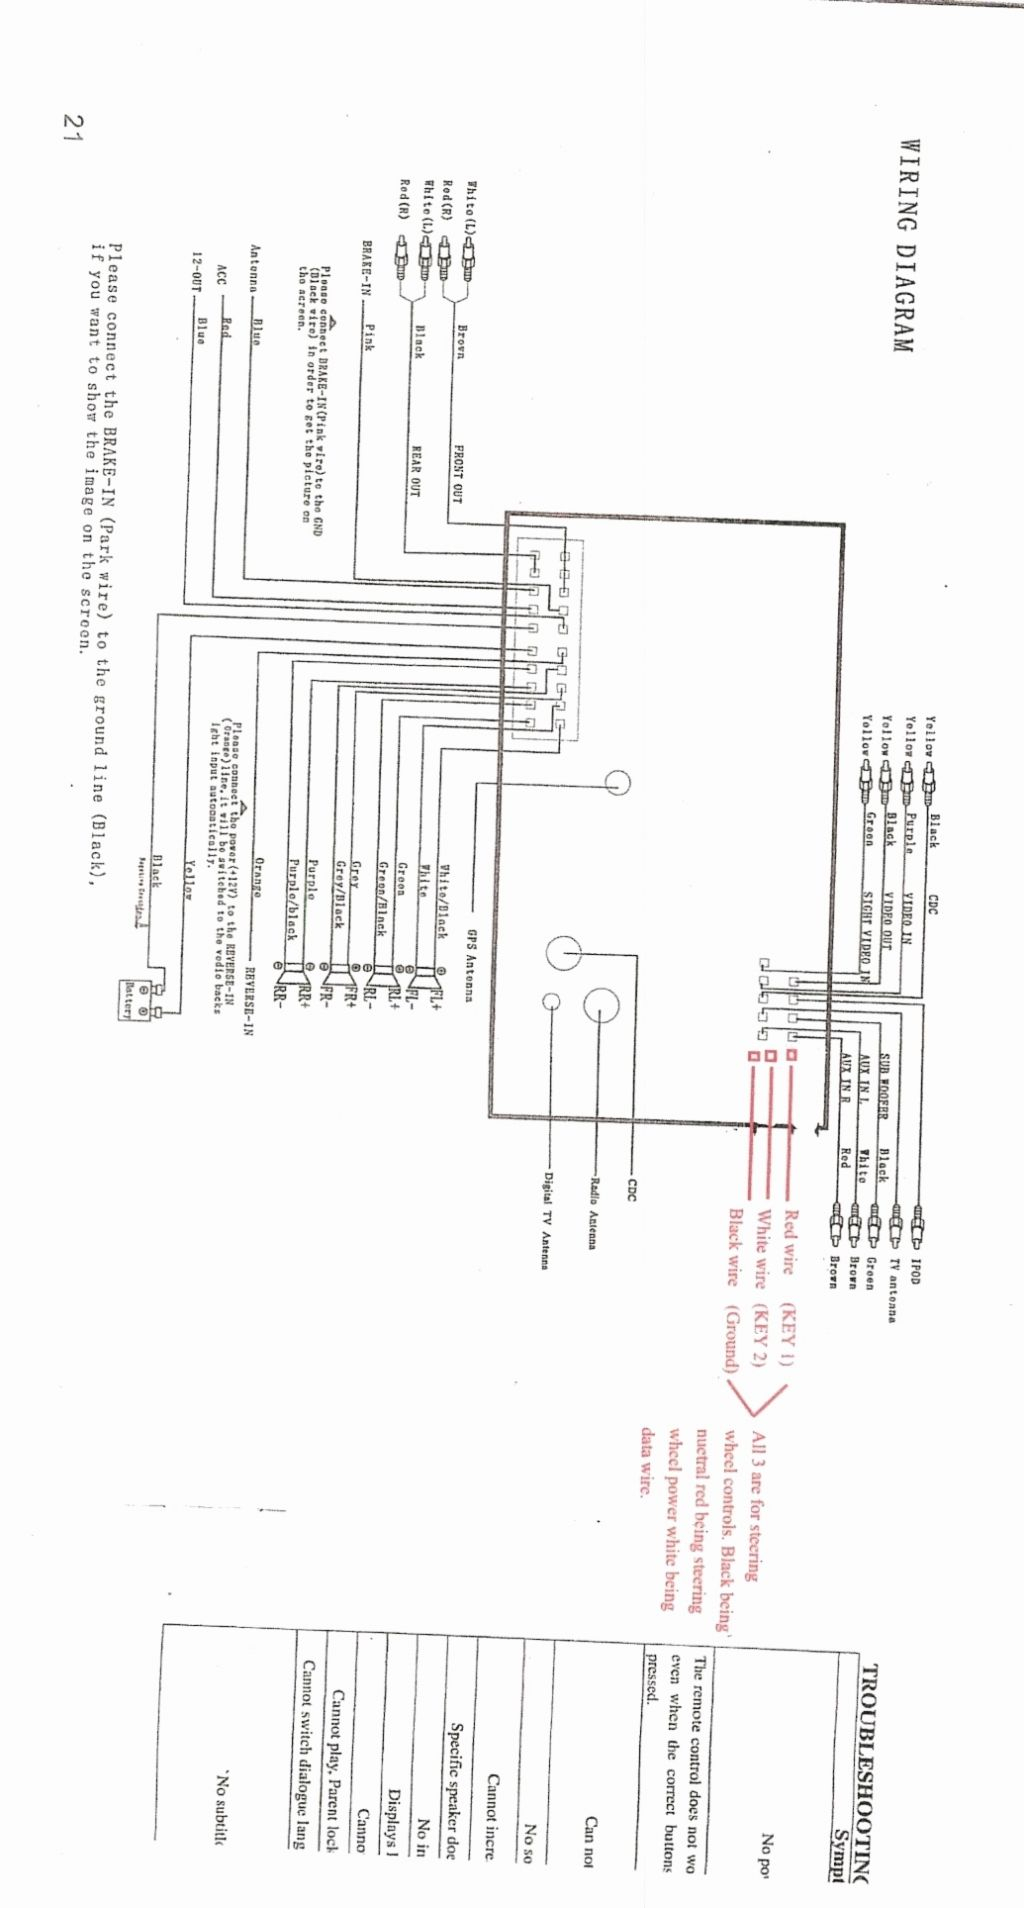 axxess steering wheel control interface wiring diagram Download-Axxess Gmos 04 Wiring Diagram Beautiful Awesome Gmos 01 Wiring Diagram S Best For Wiring 17-q